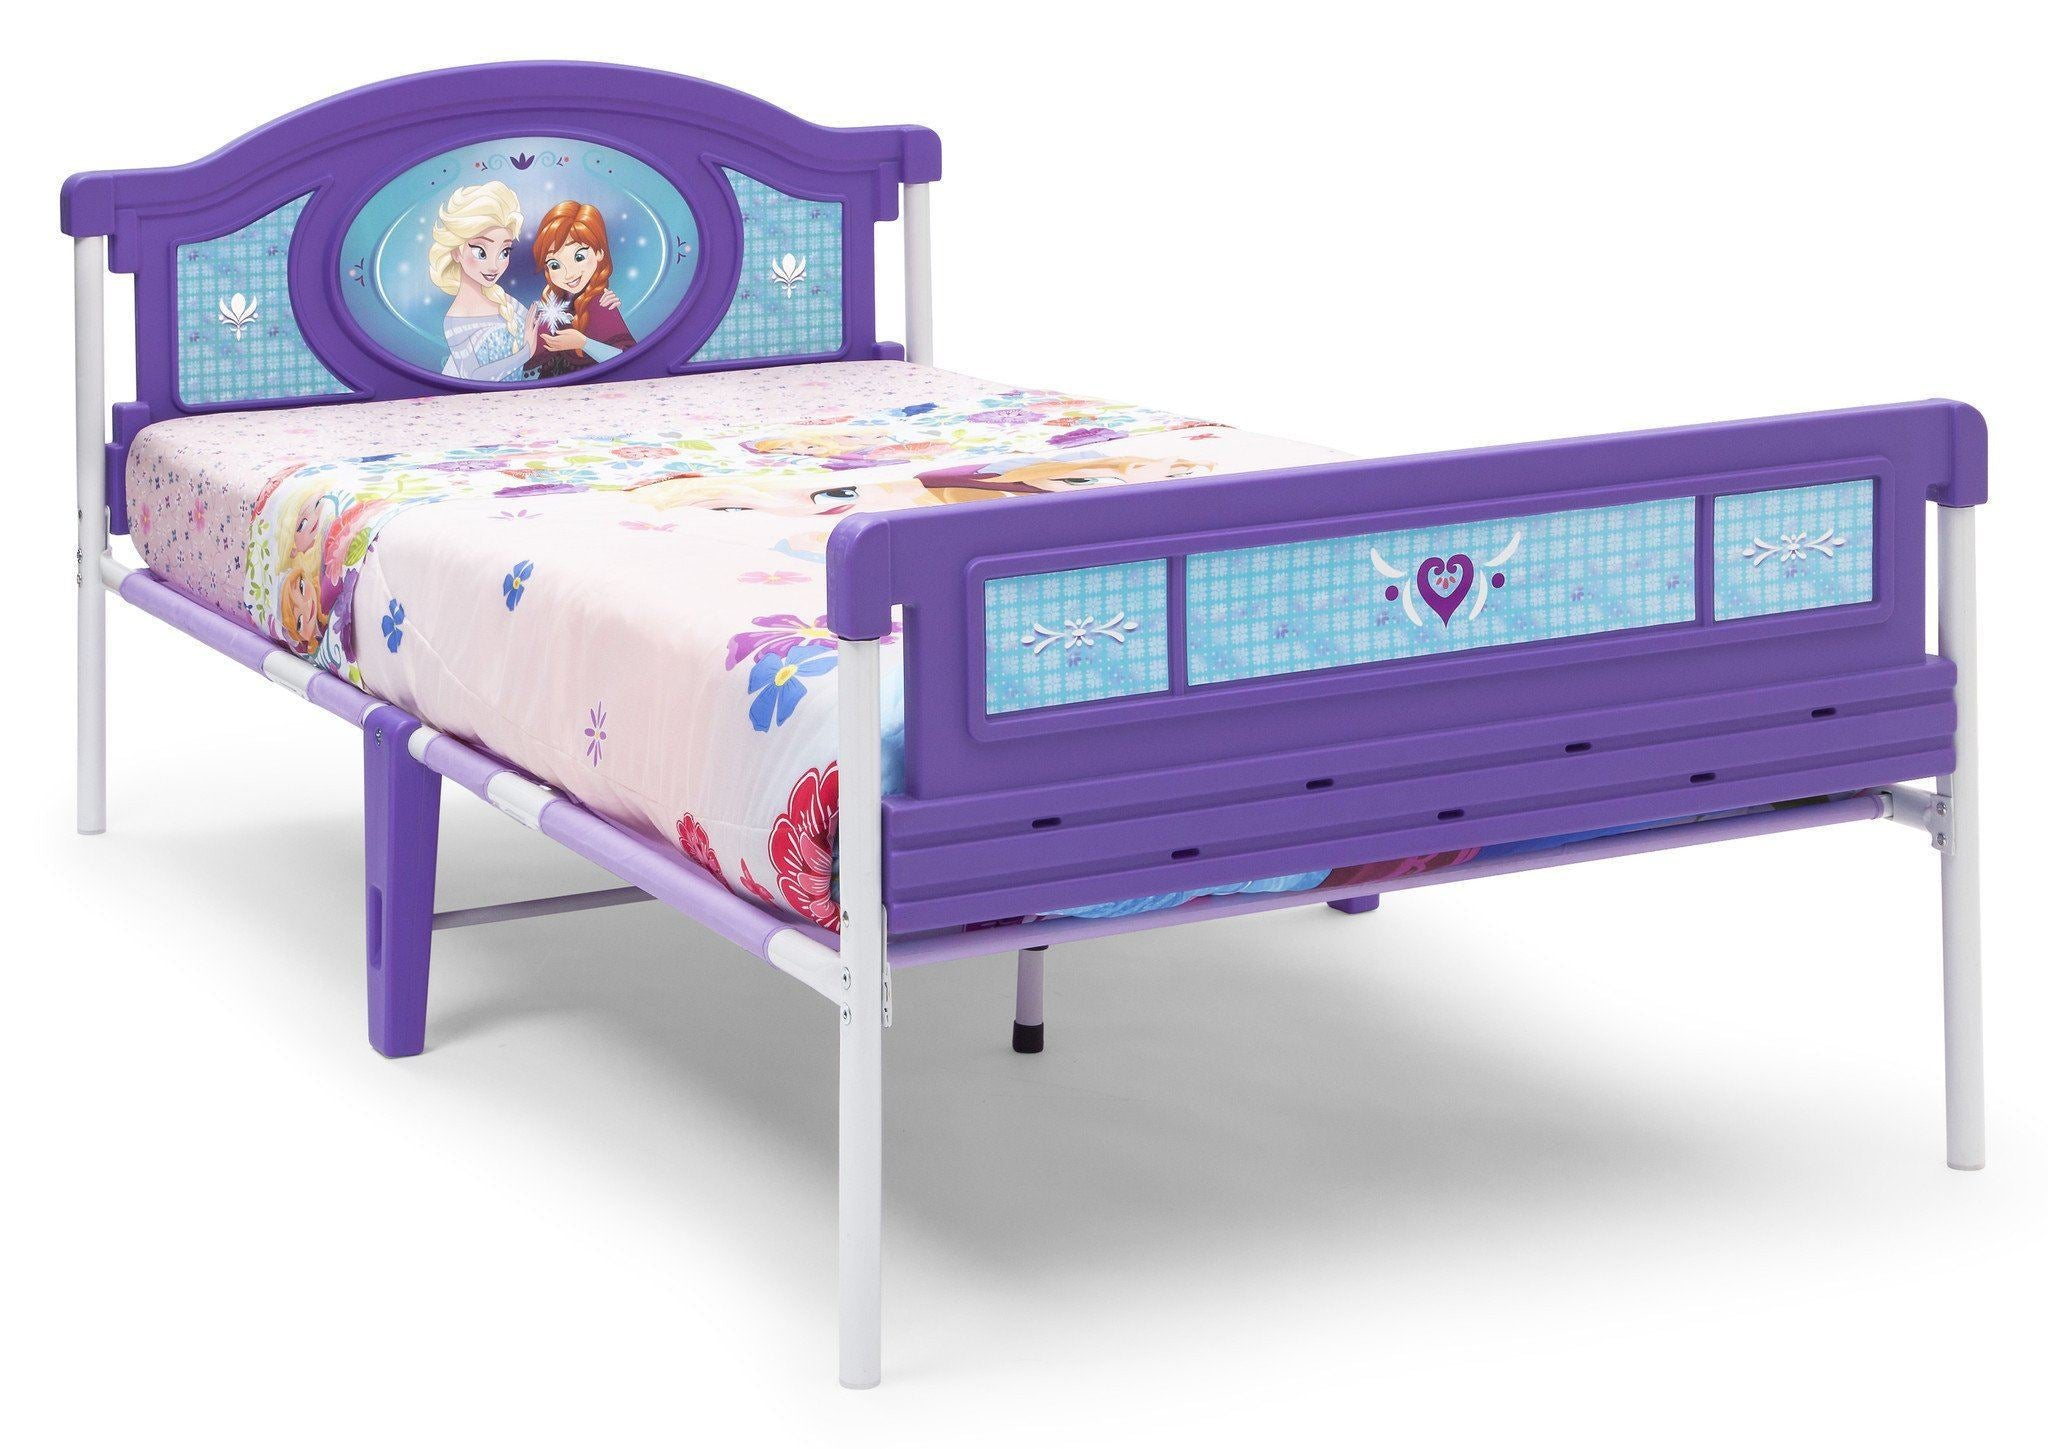 Delta Children Frozen Twin Bed, Right View a1a